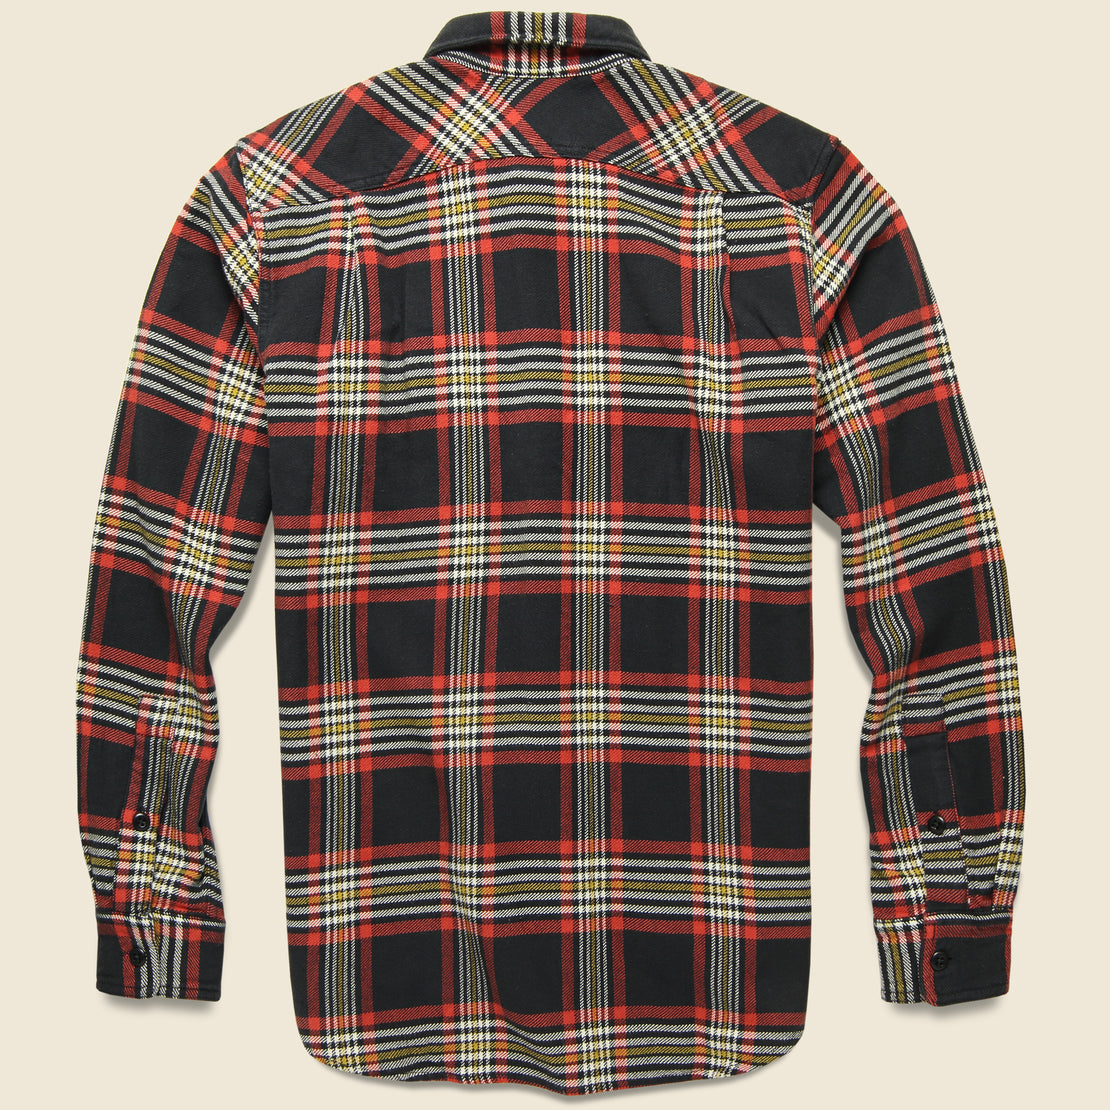 Vintage Flannel Workshirt - Black/Red/Gold